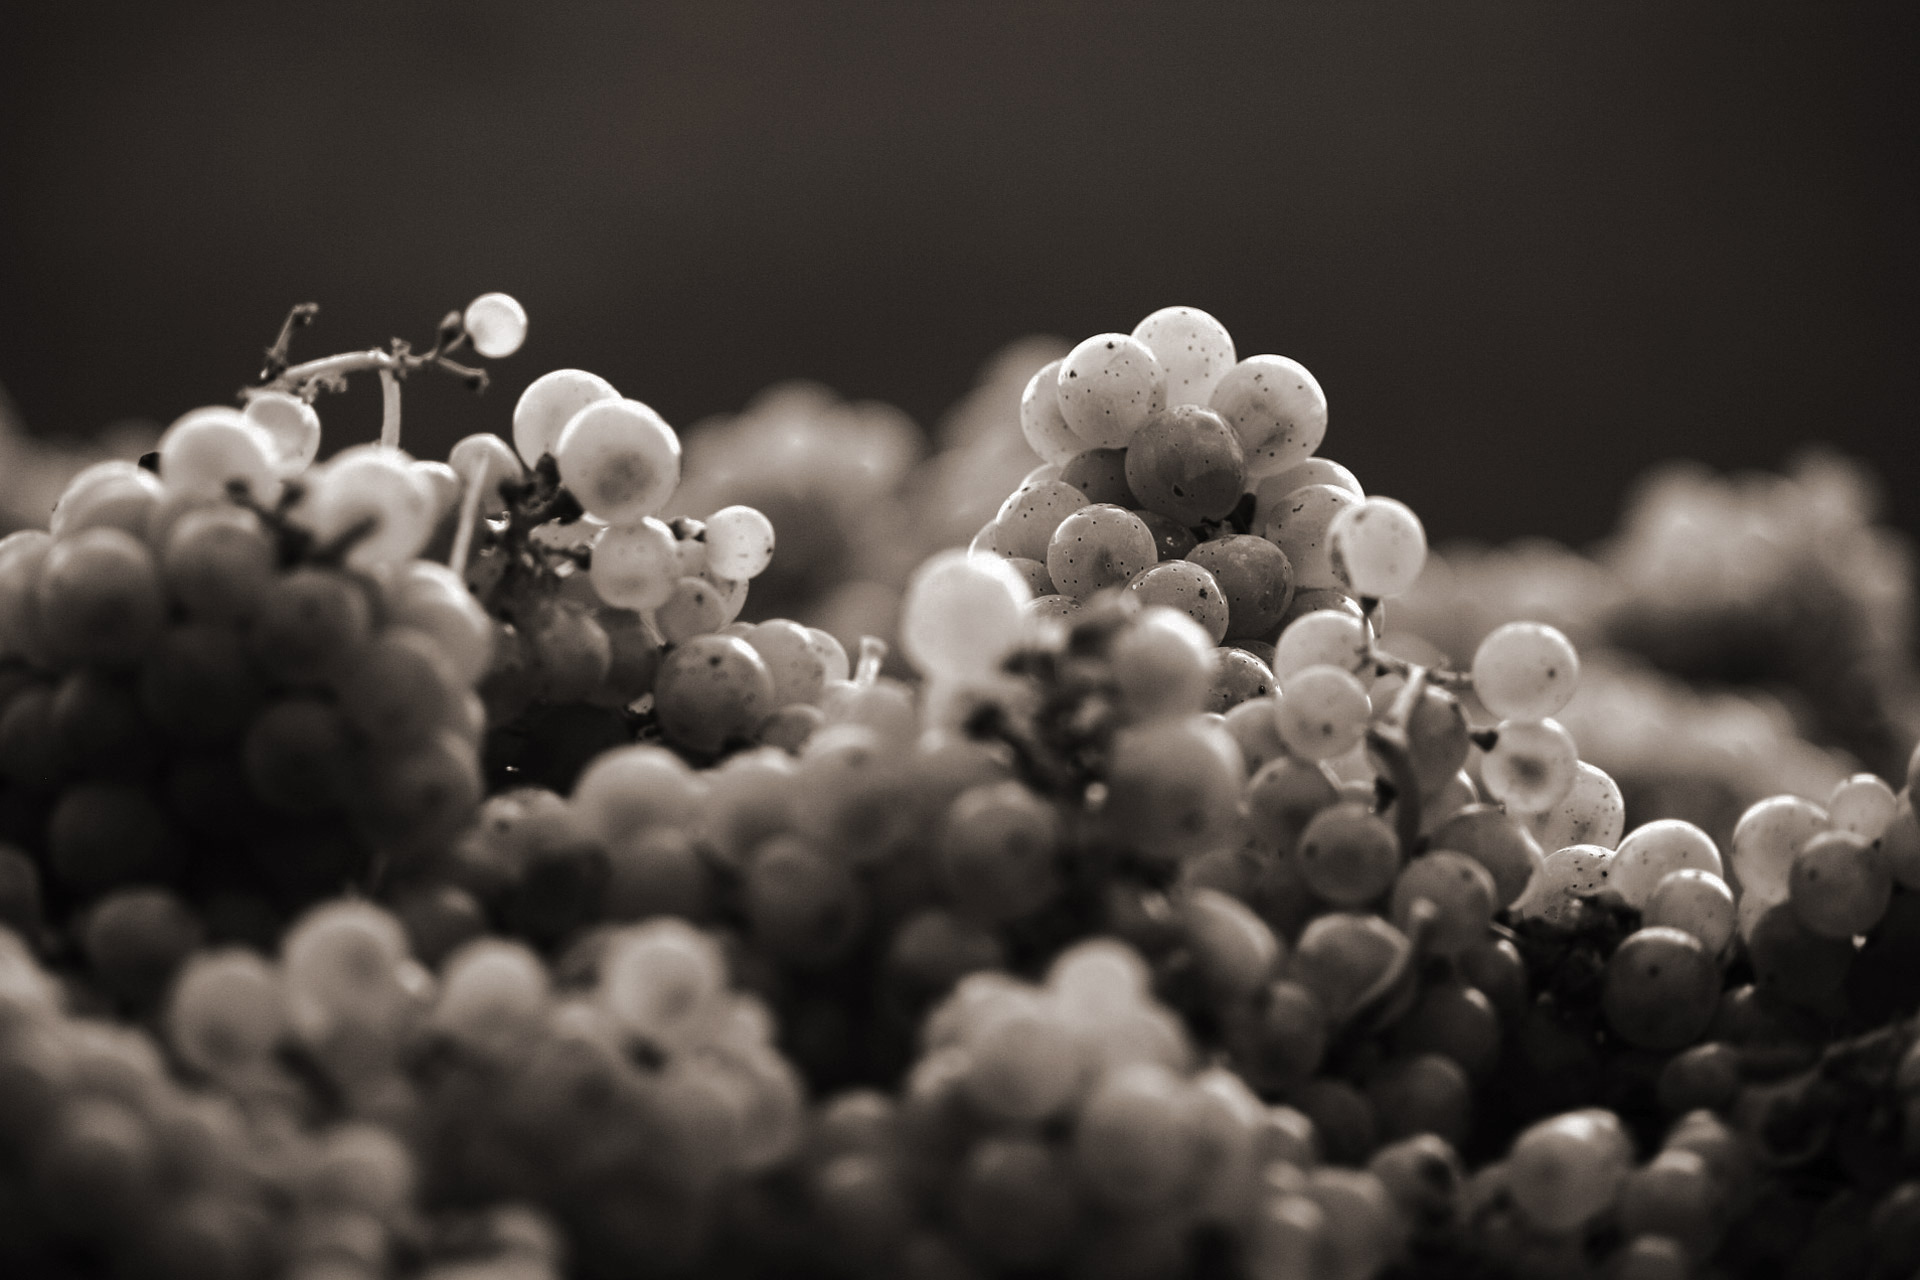 grapes photo, close-up